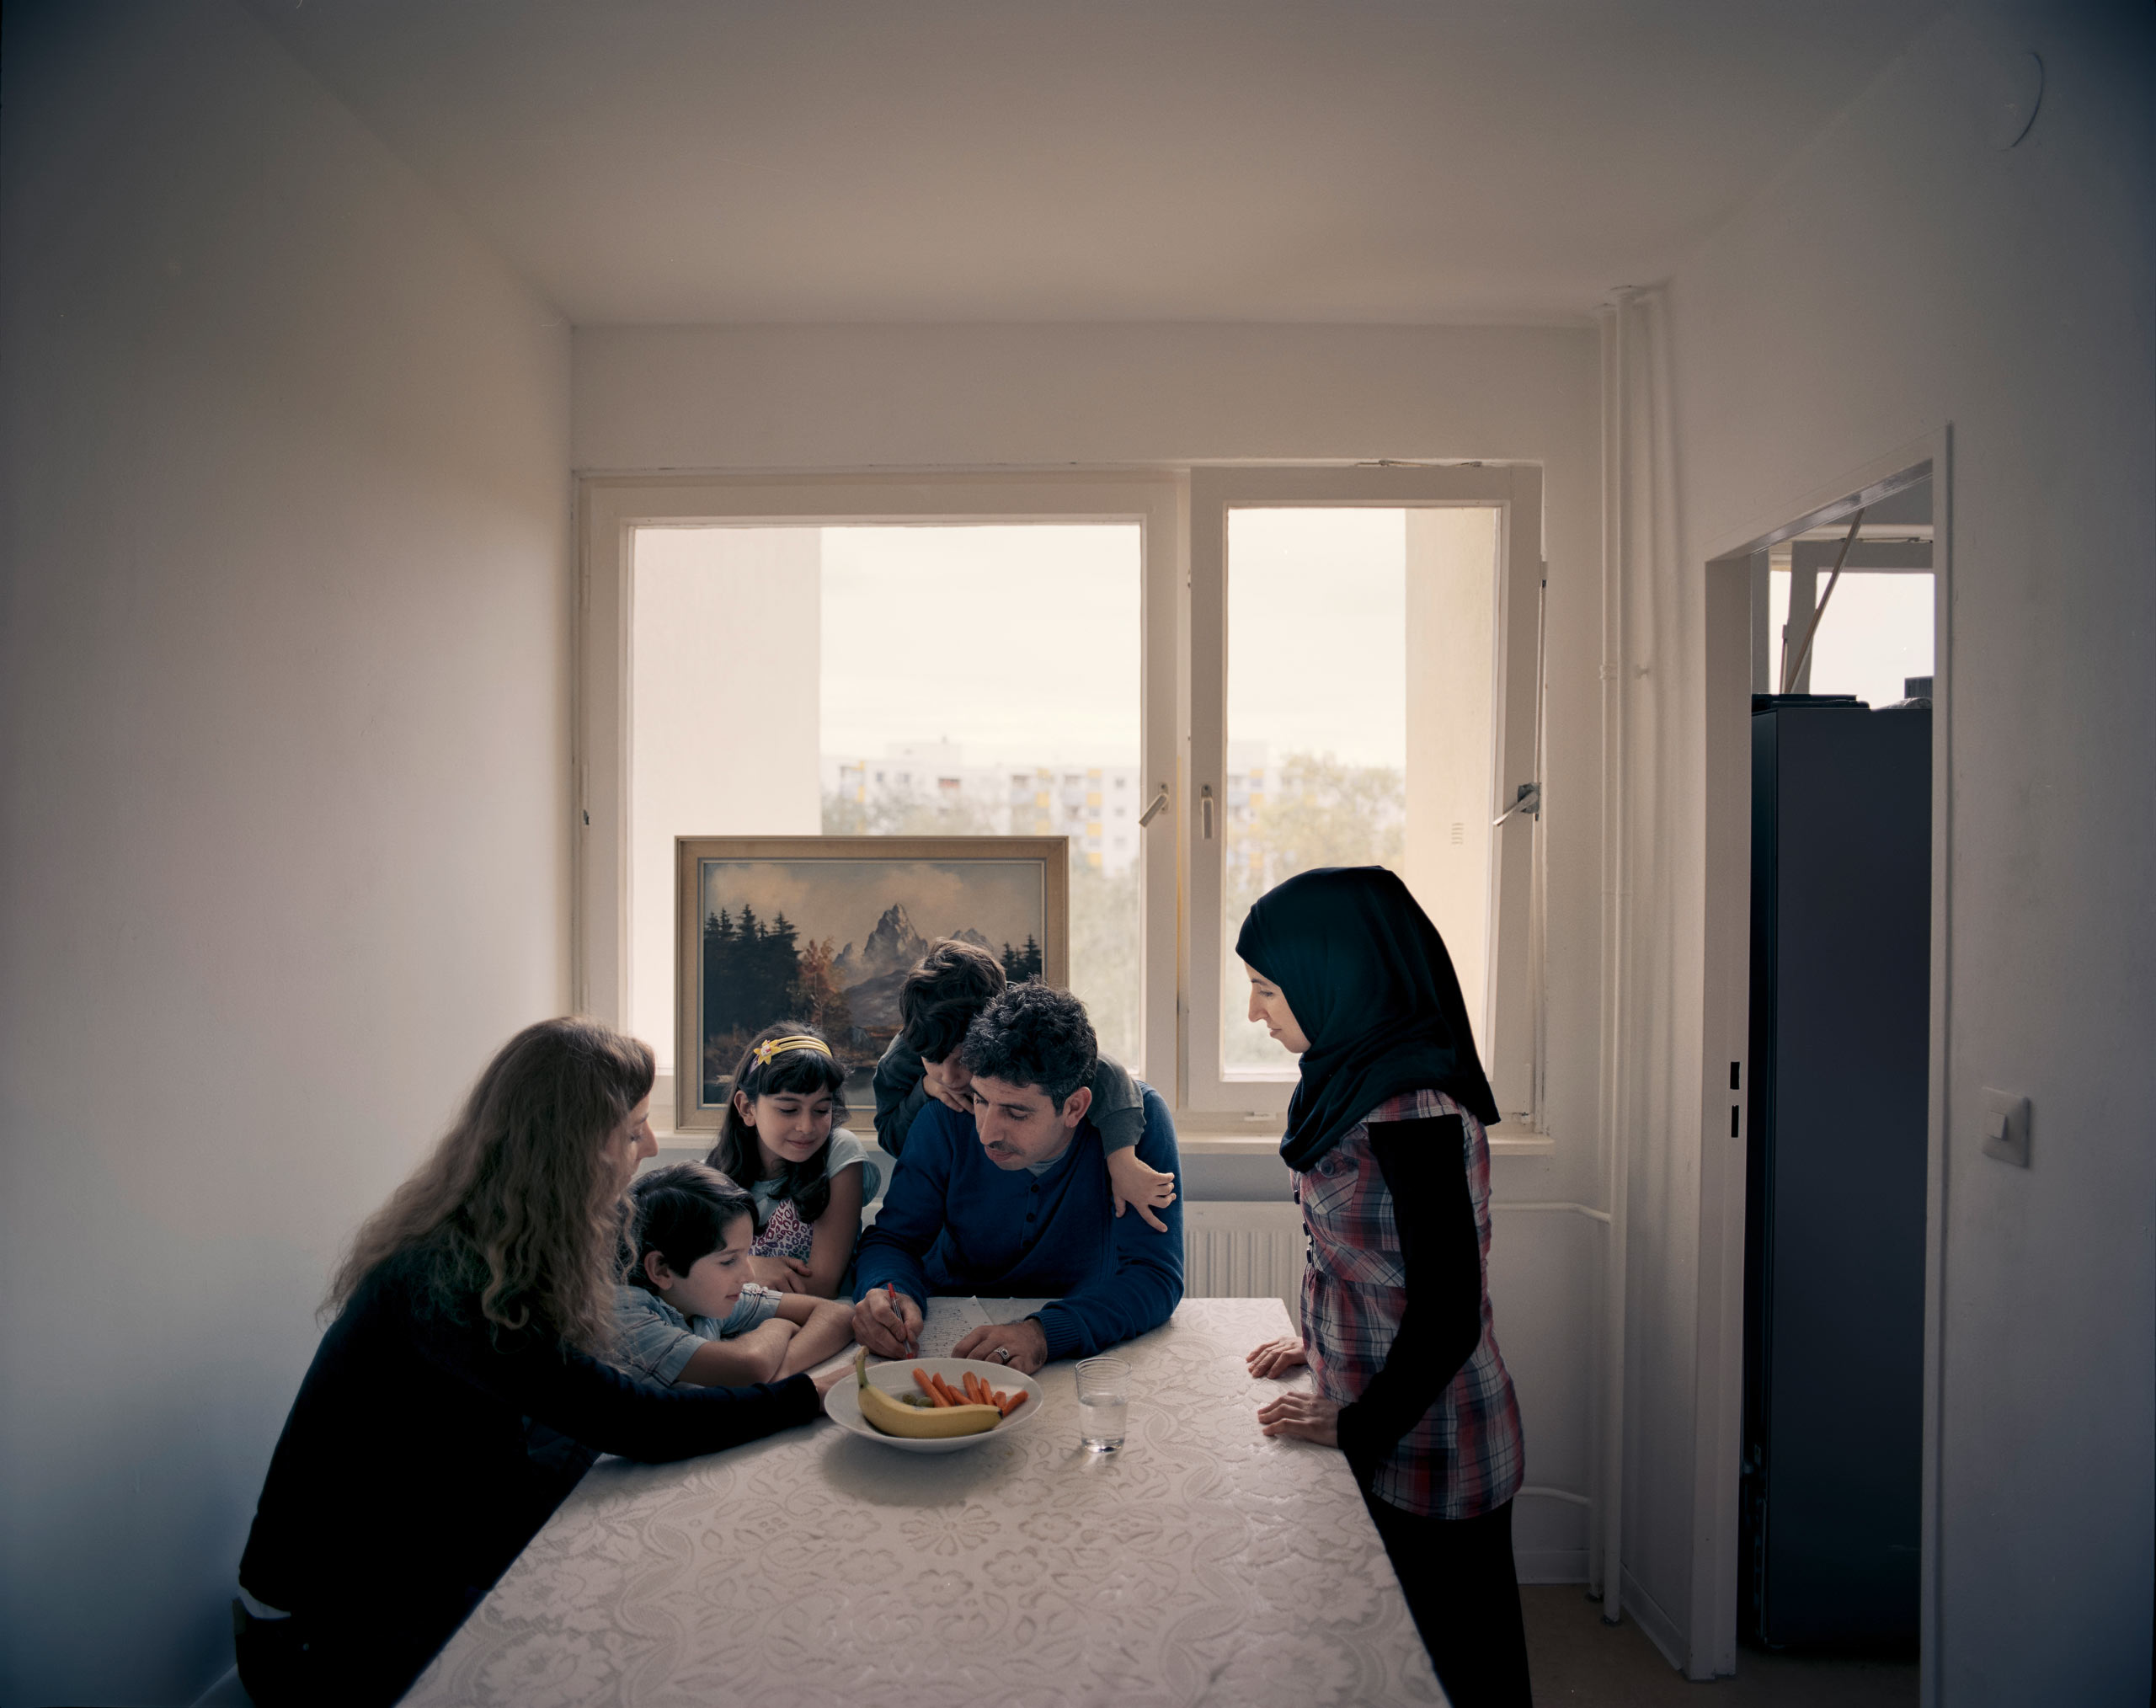 """Britta Leben, left, a 27-year-old German master's student, helps Zakaria Edelbi, 30, center, with                               his German-language work. Edelbi came to Berlin in August 2014, leaving behind his wife and three                               children in Aleppo, Syria. He was reunited with them in March 2015 after months of trying to secure visas.                                                               Leben first met Edelbi in May thanks to Beginn Nebenan Berlin, an organization that connects locals with refugees. """"I just wanted to get to know the people we're sharing this city with,"""" she says.                               """"And Zakaria's family is so open-minded and fun to be around."""" In late August, the Edelbis moved out of a shelter and into their own flat in Spandau, West Berlin. The children now attend school nearby and already speak some German. Edelbi says he fears for Syria's future—but for the first time, he is                               no longer afraid for his children."""